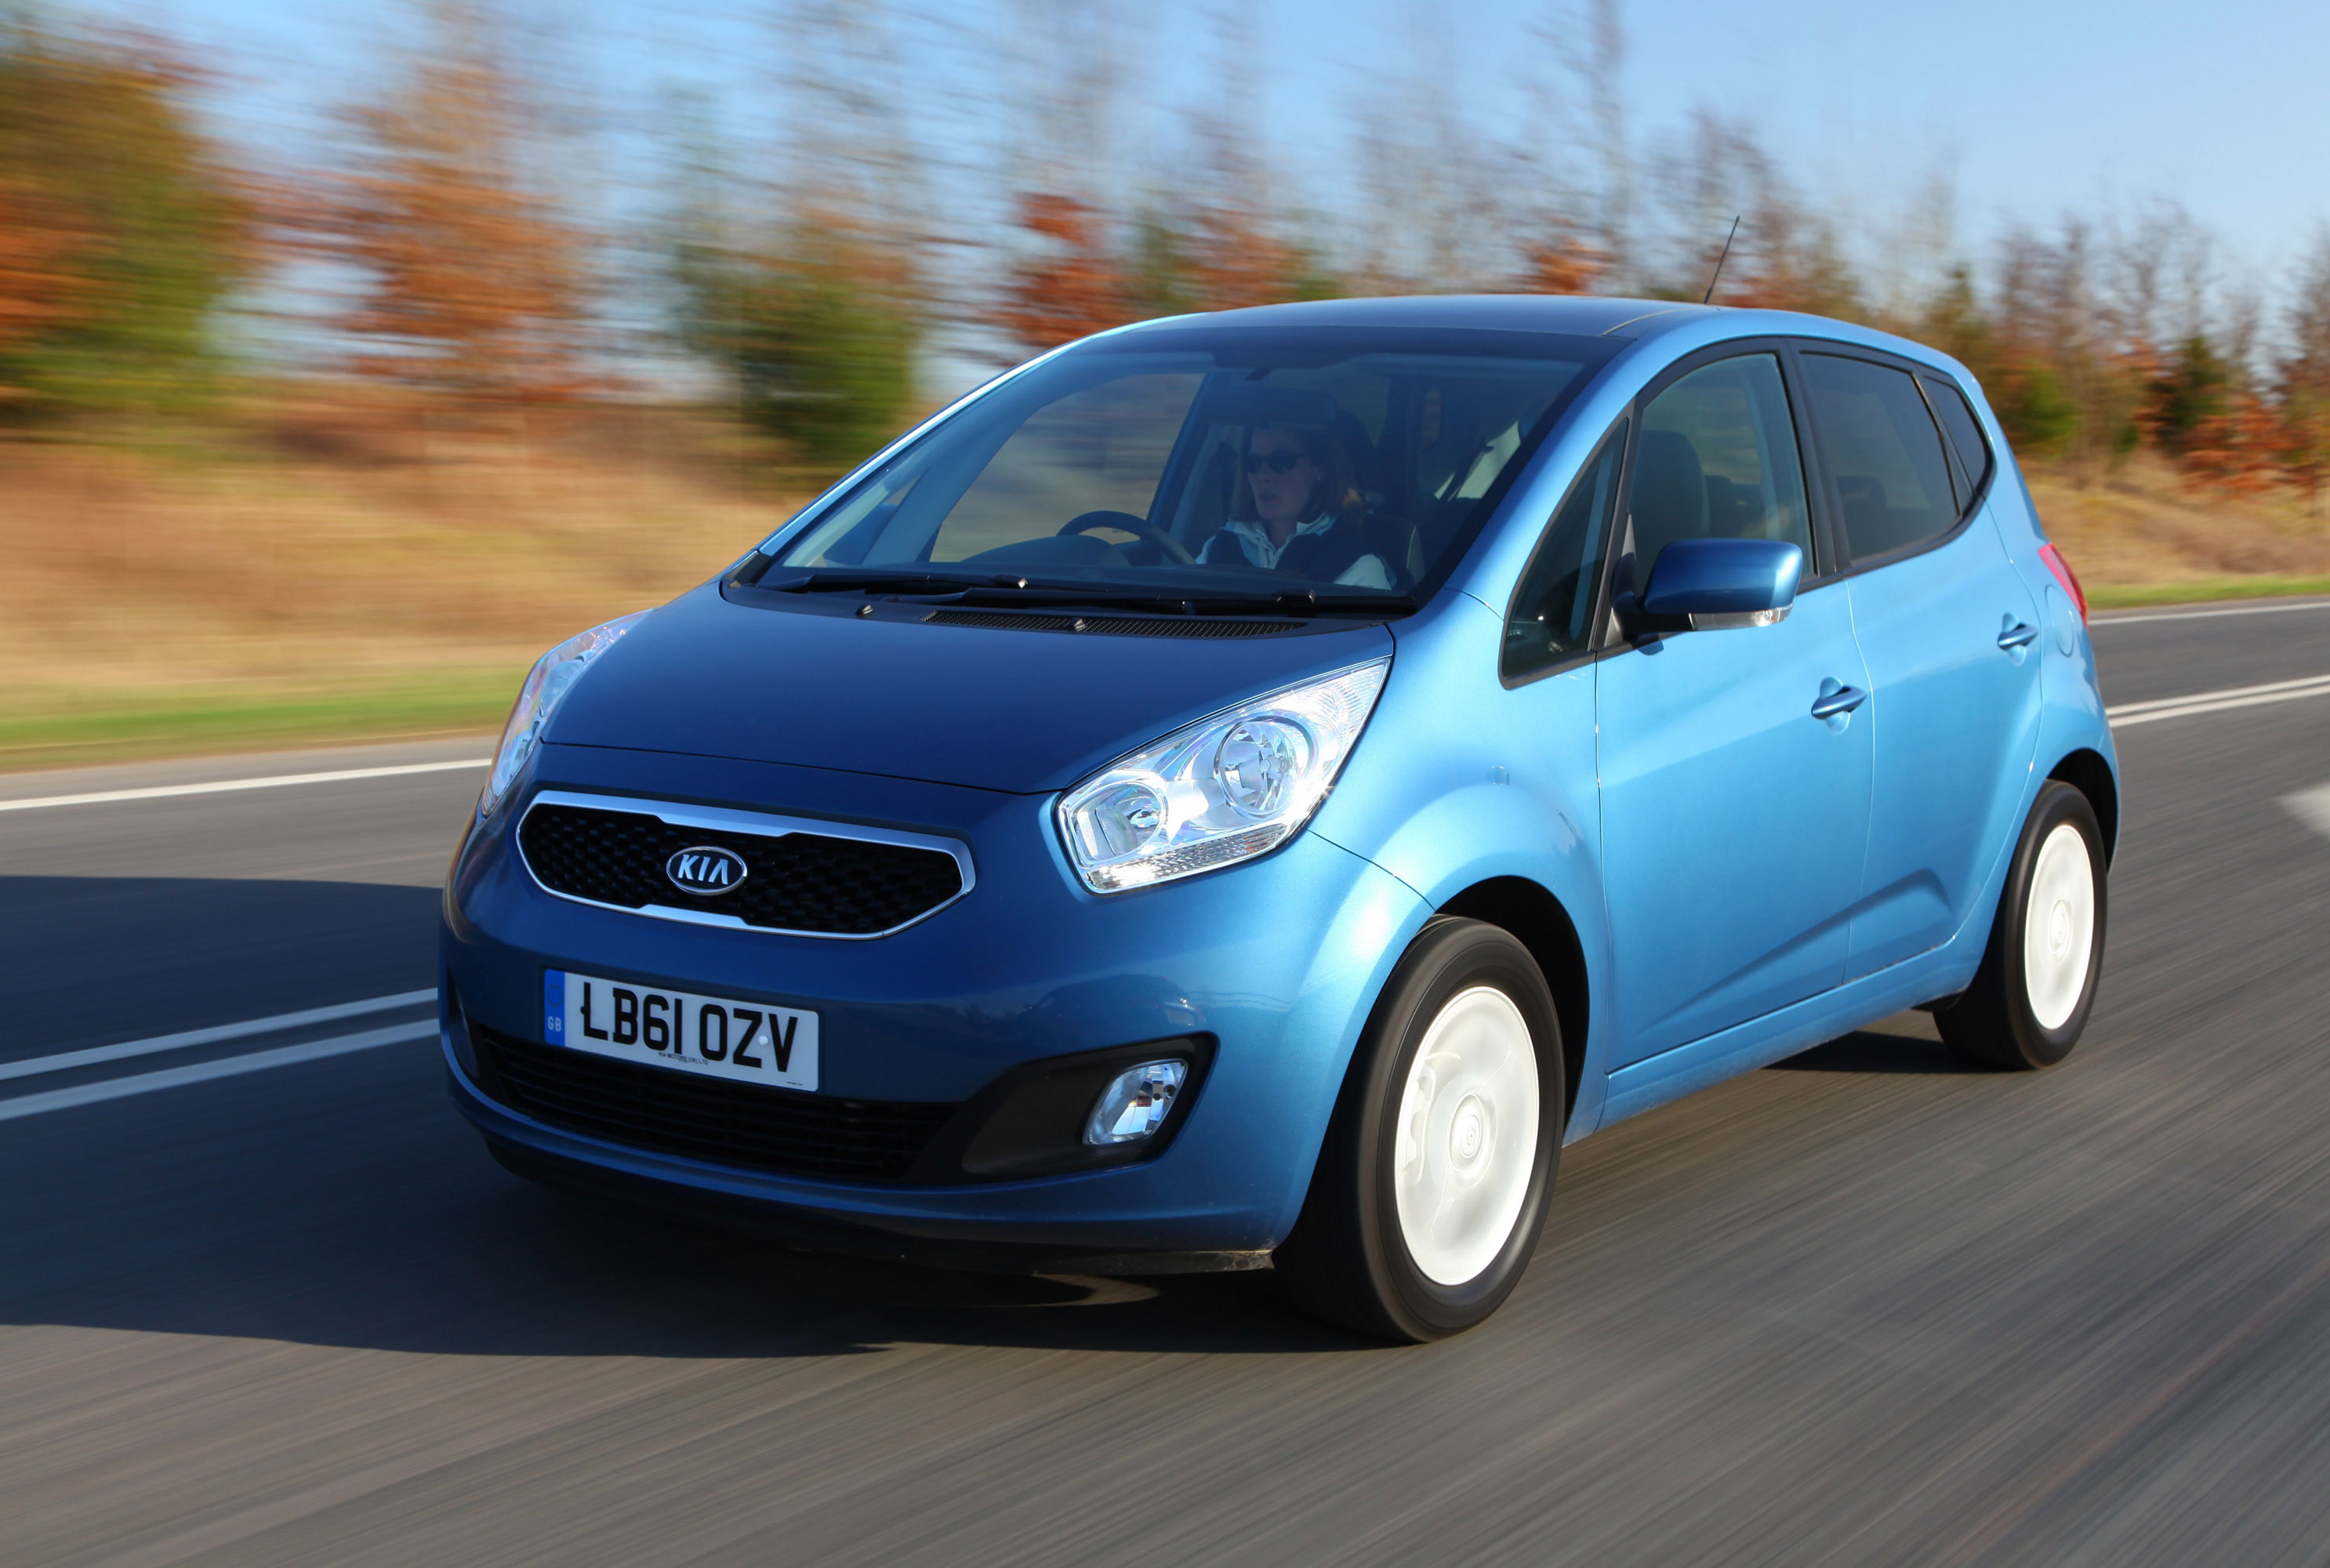 Kia Venga 2012 photo - 2